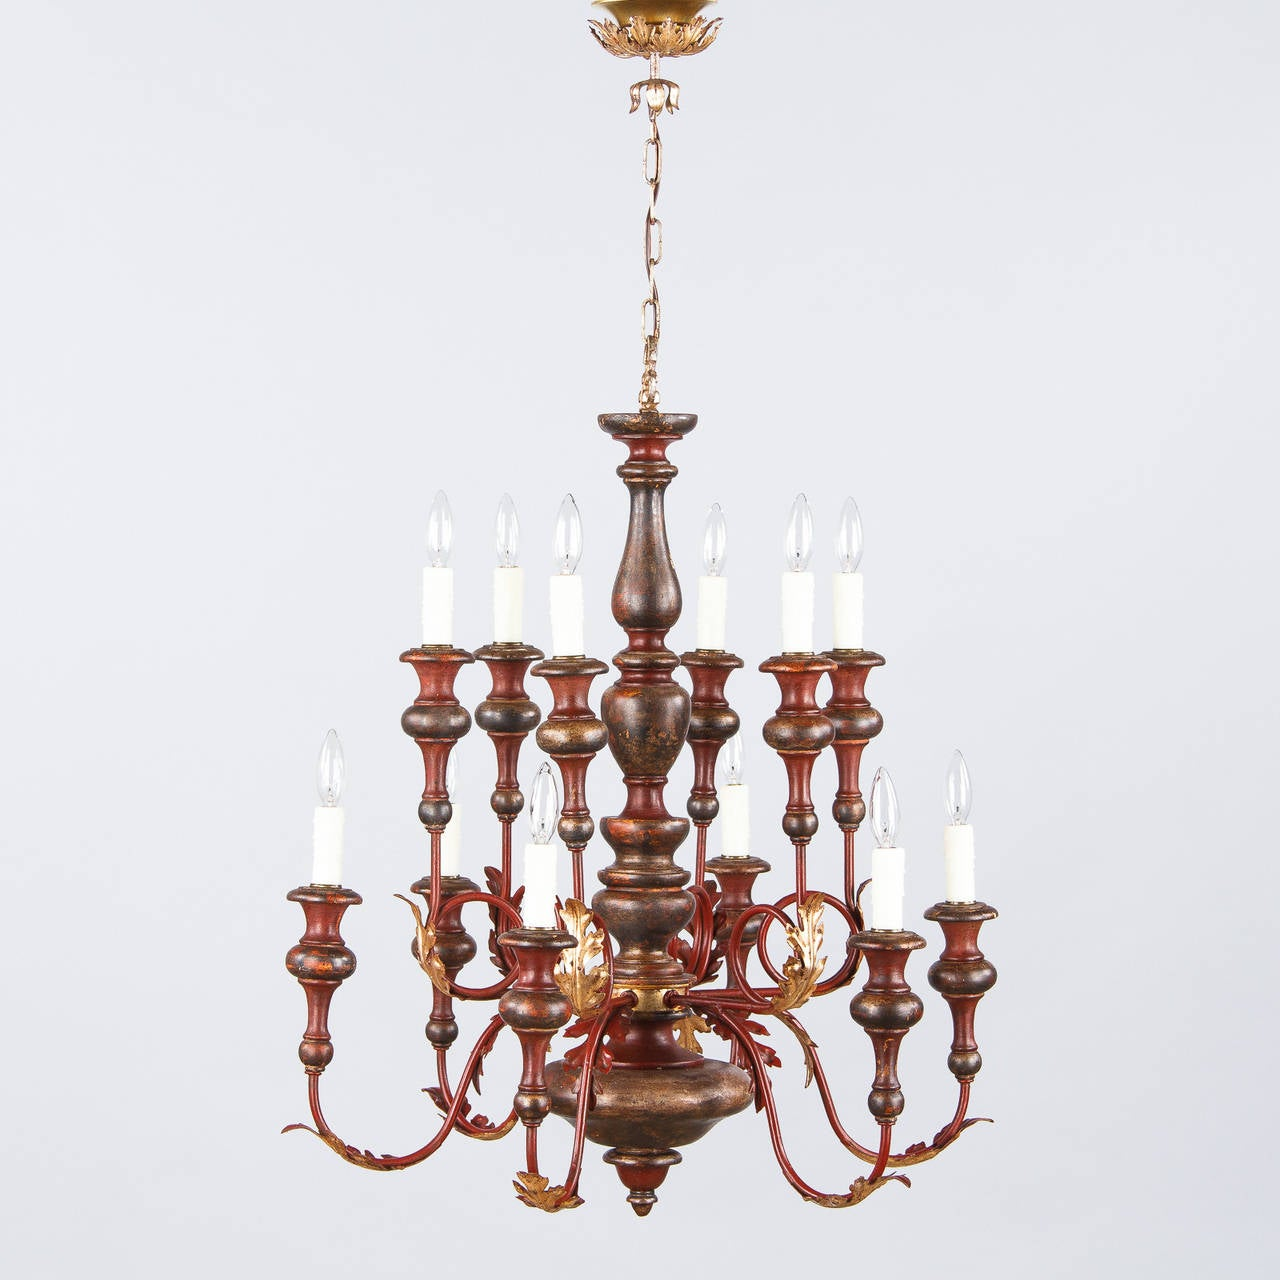 A wonderful twelve-light chandelier from Italy, circa 1920s, made of painted wood and metal with gilded metal acanthus leaf motifs. The center part is turned wood painted in faded red and bronze tones. The arms are scrolled metal painted red. The